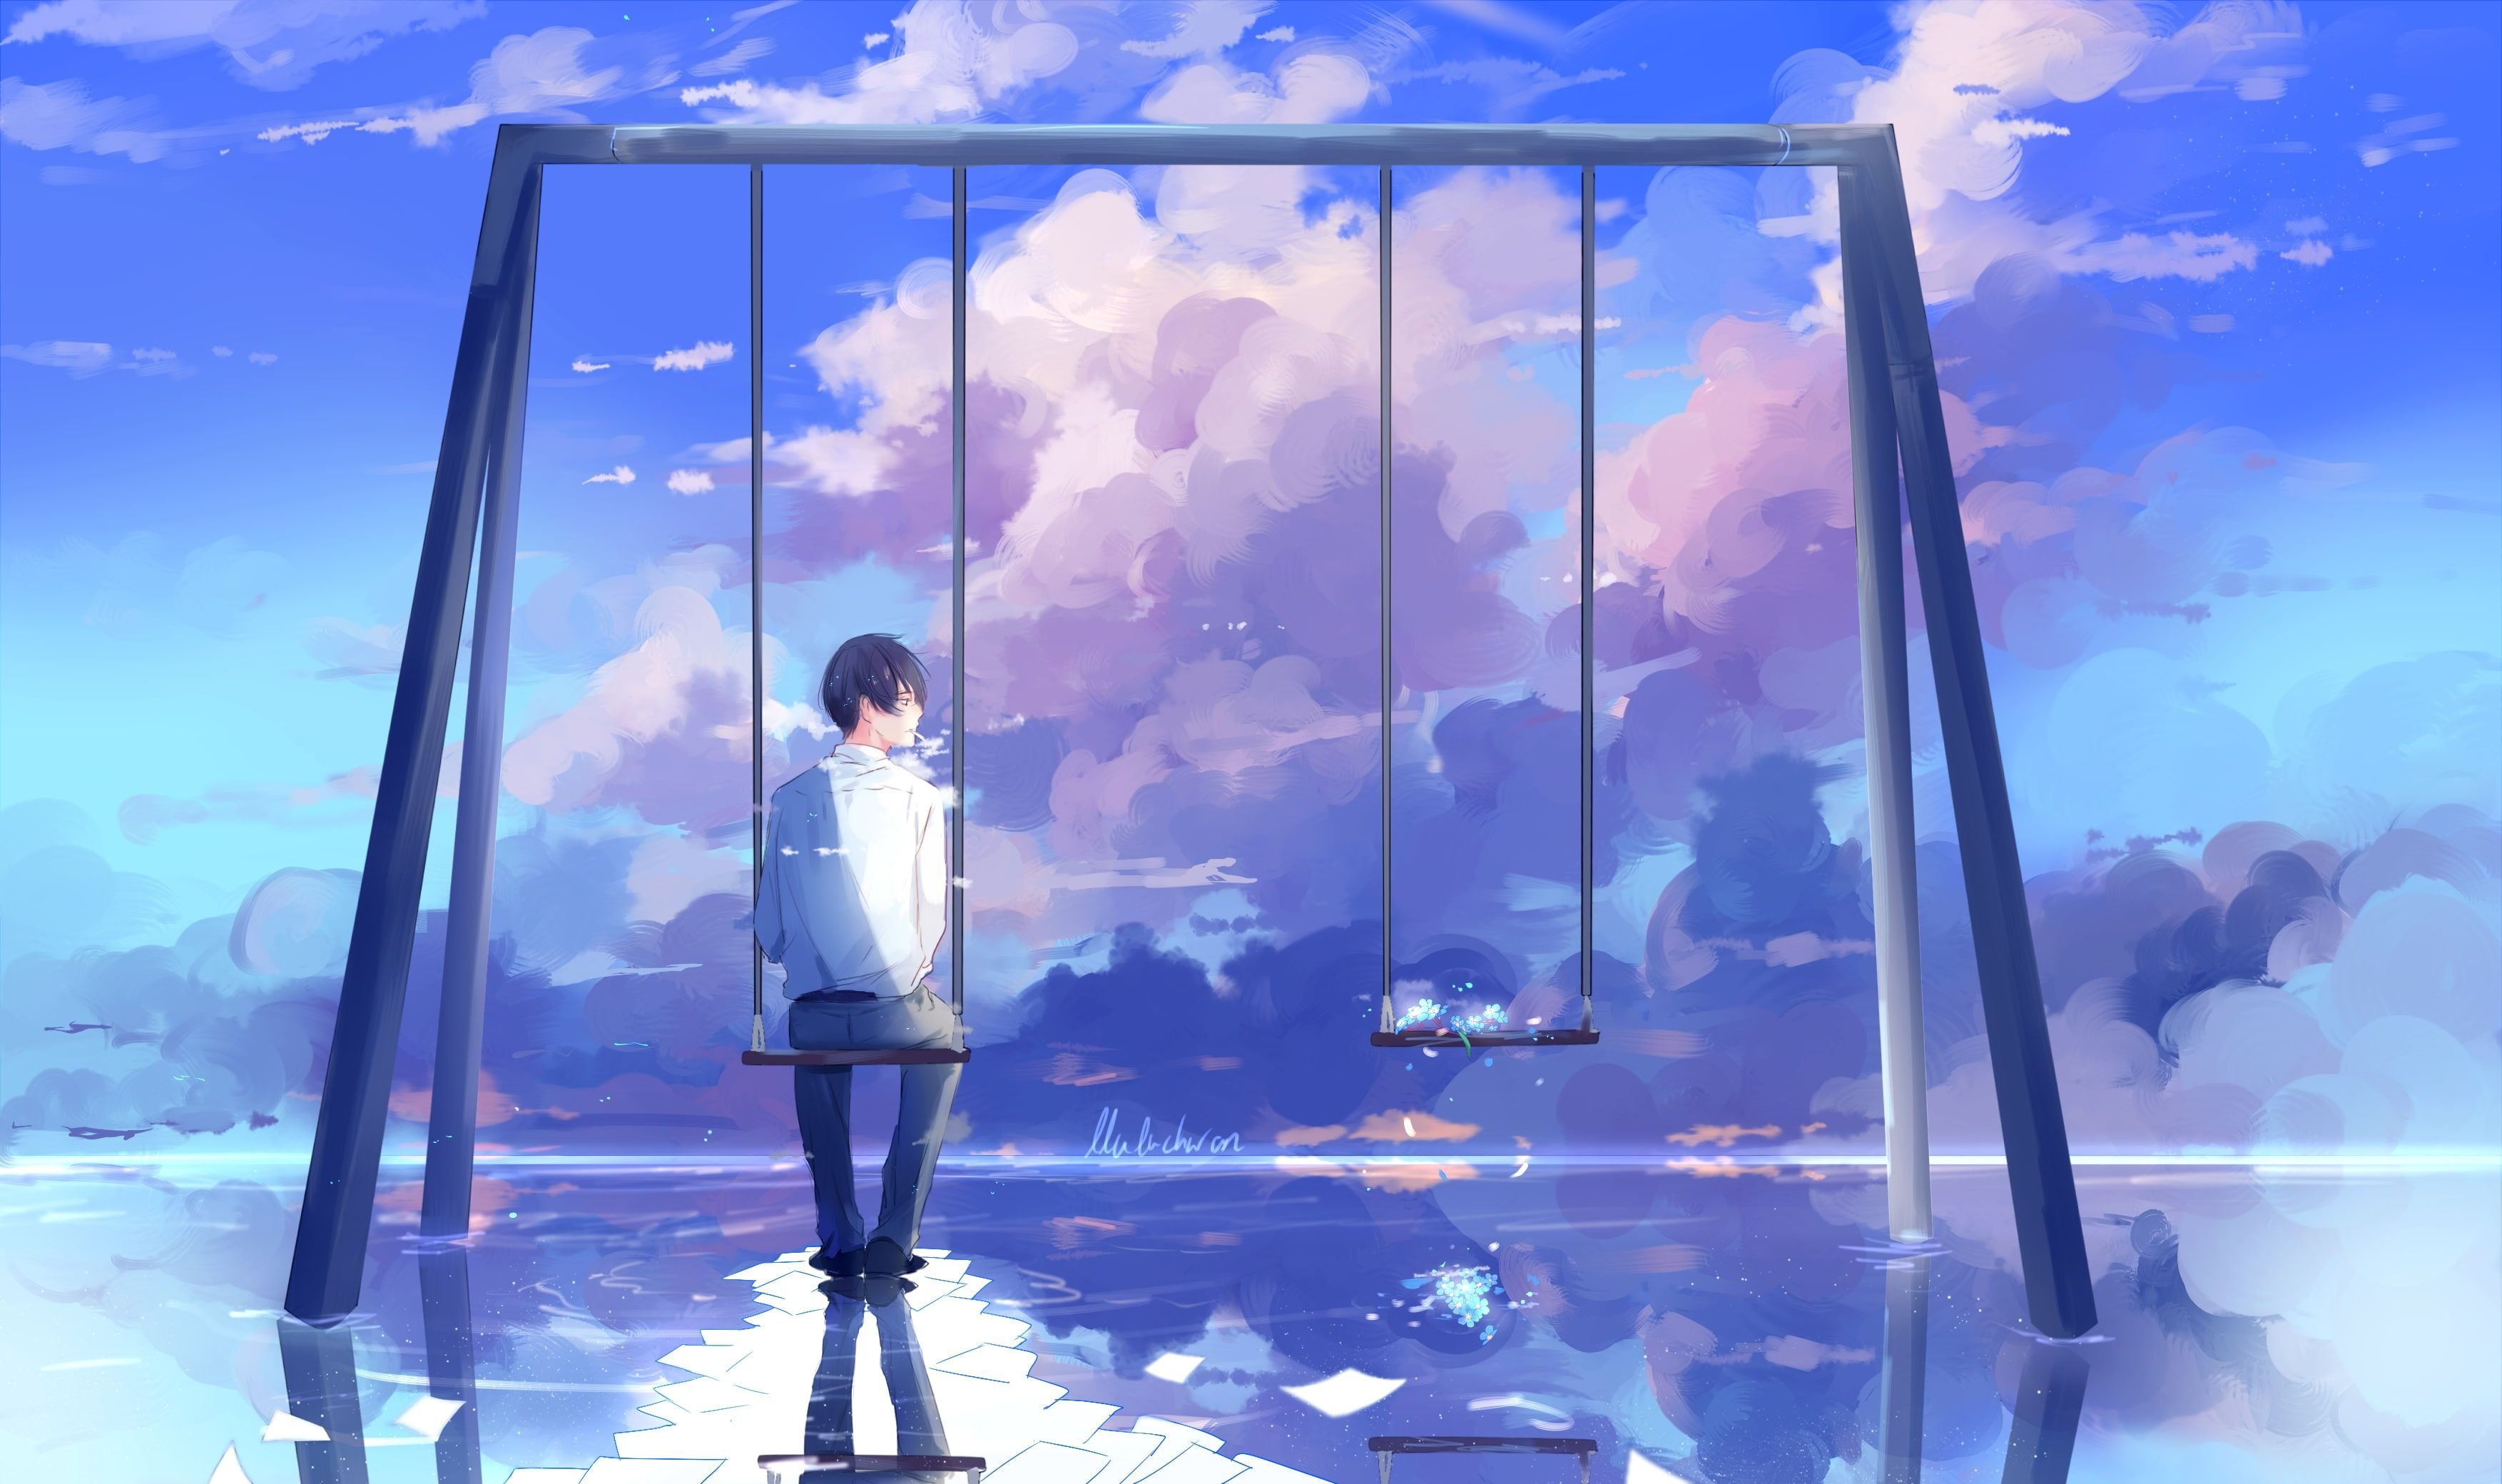 anime boy scenic swing clouds back view reflection